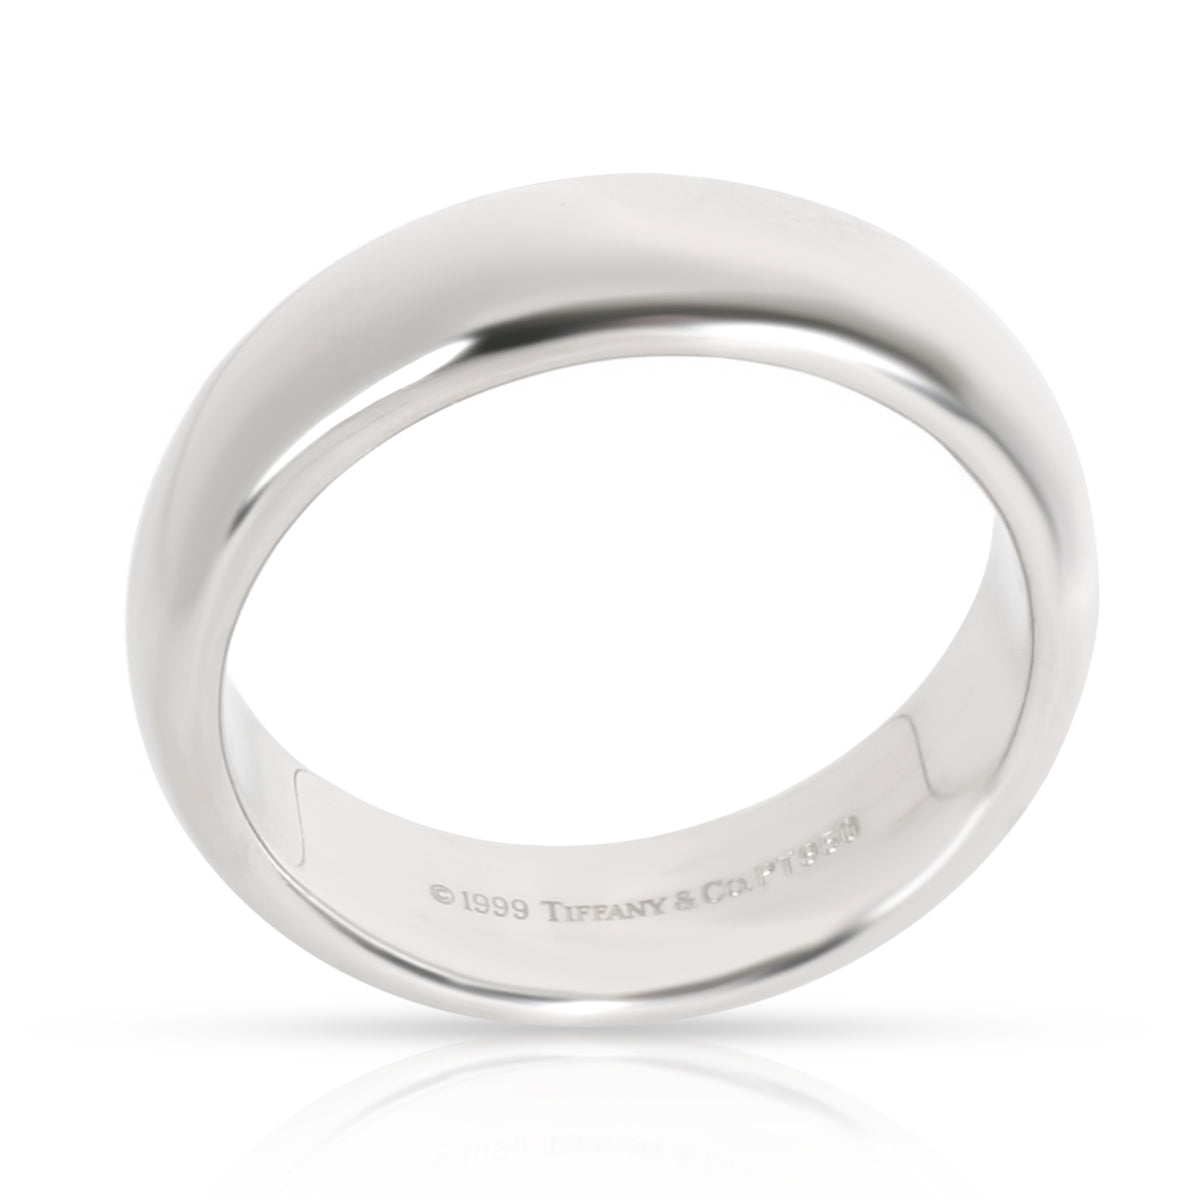 Tiffany & Co. Classic Men's Wedding Band in  Platinum 6mm